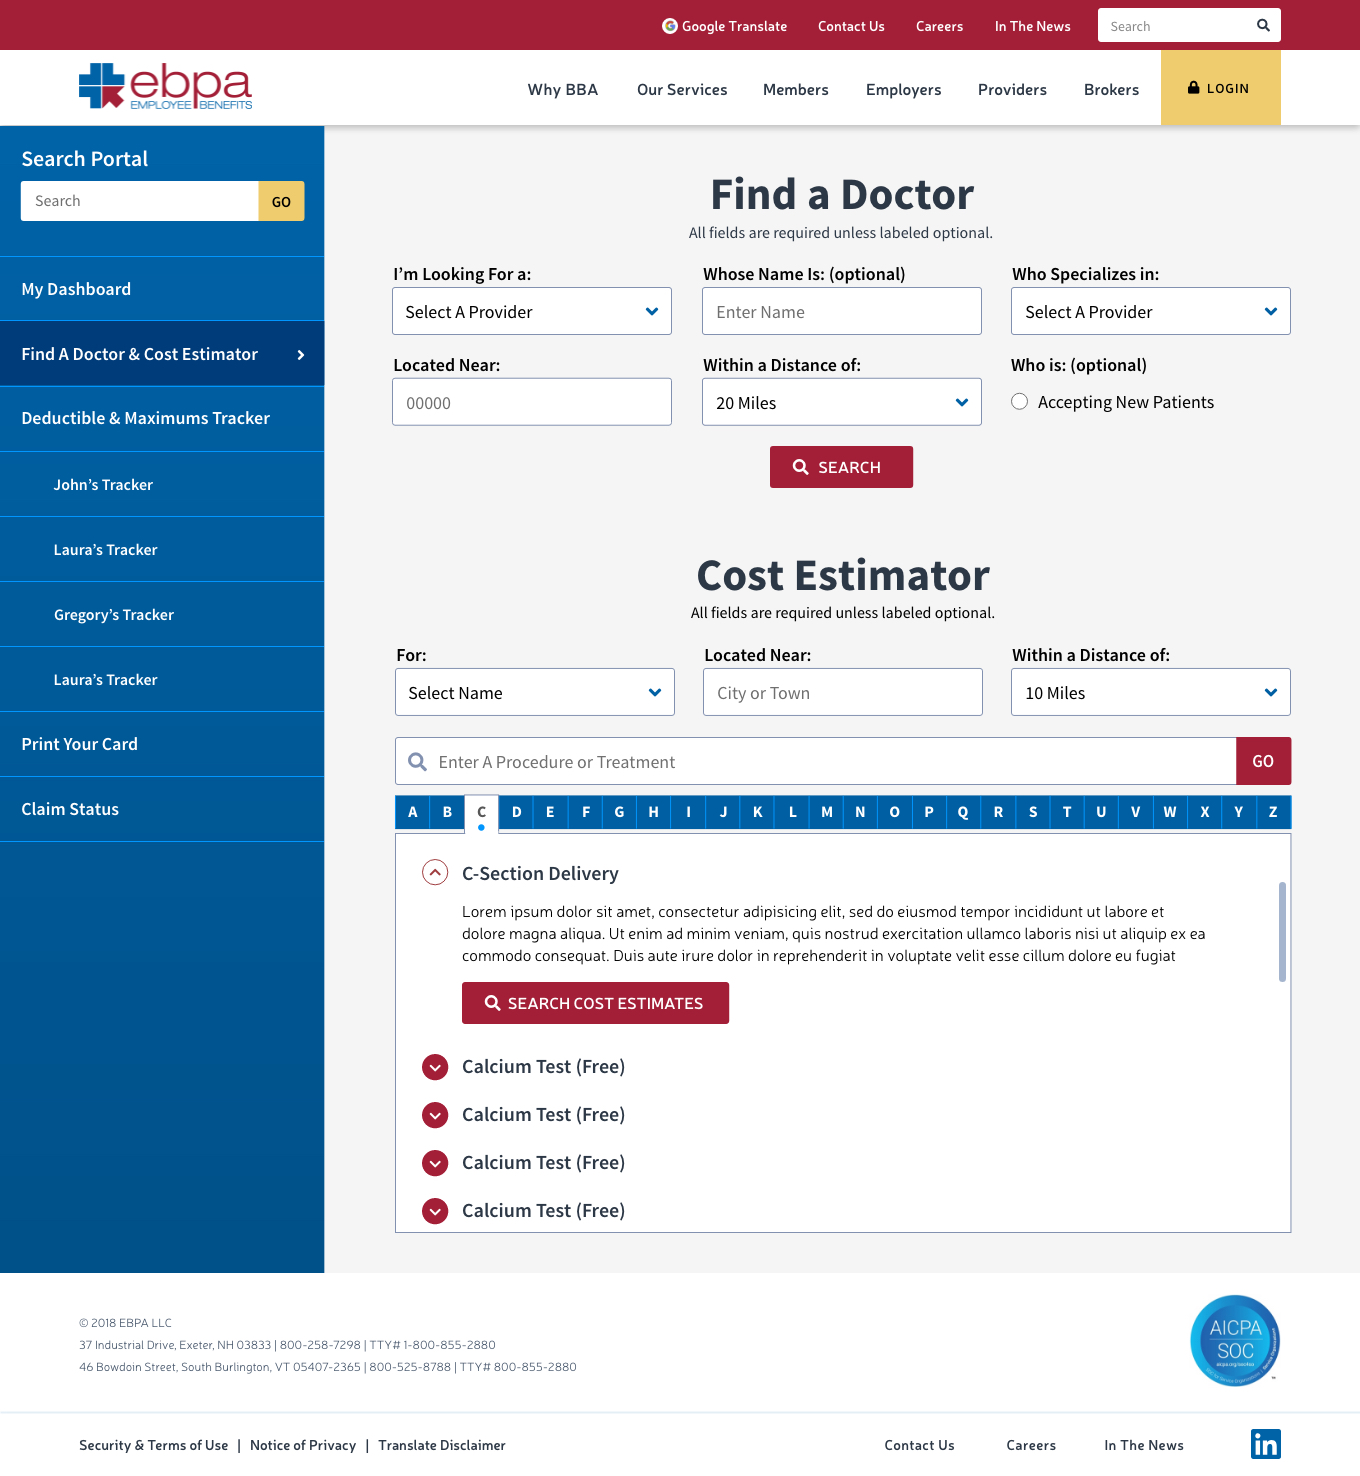 EBPA Portal Find a Doctor and Cost Estimator  – proprietary content removed